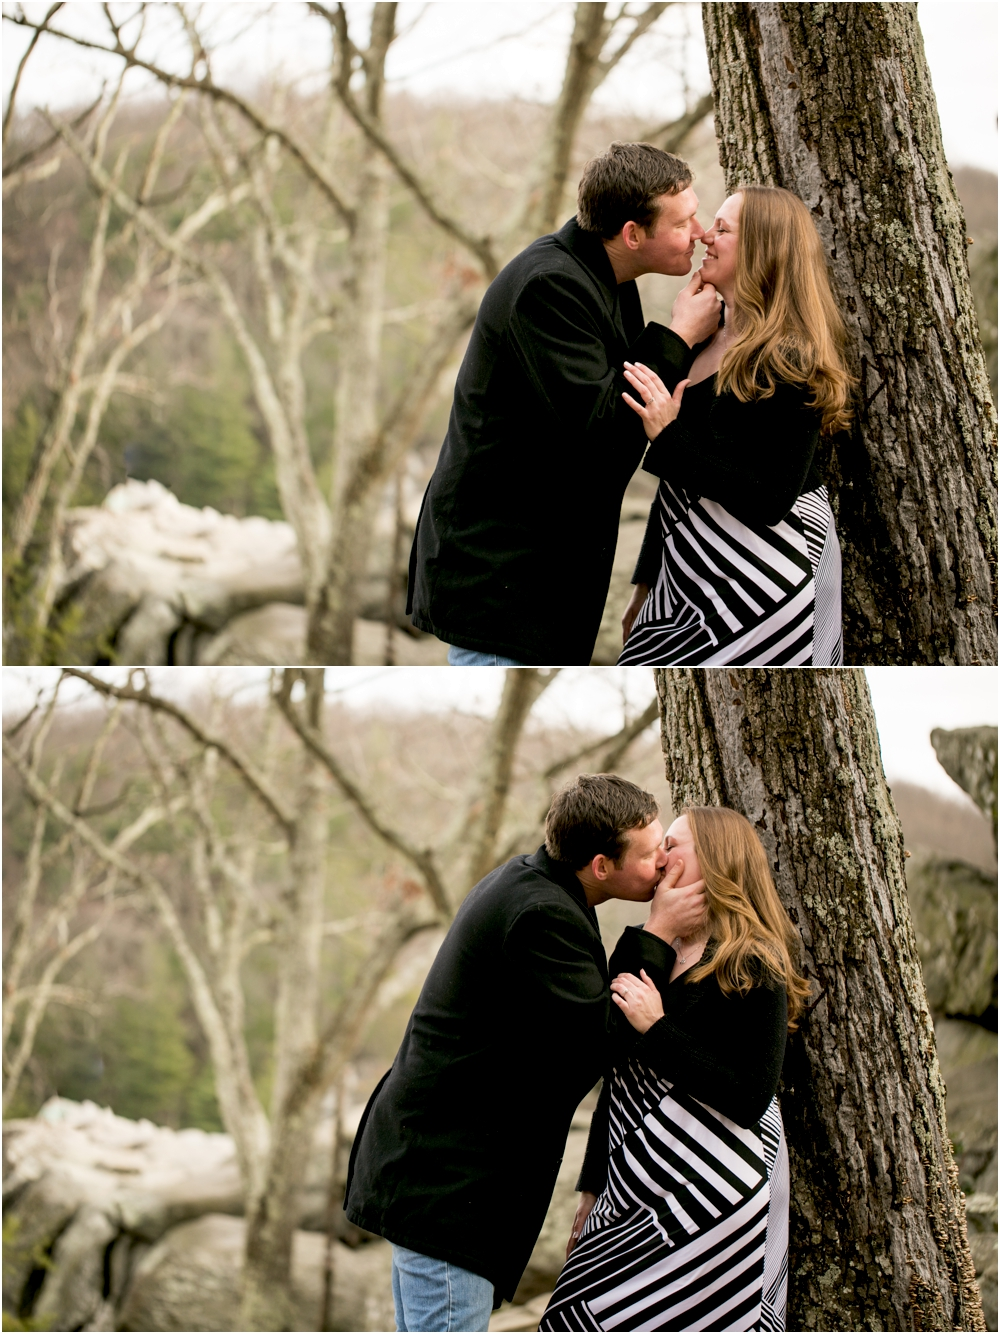 bridget jeff woods engagement session living radiant photography photos_0033.jpg